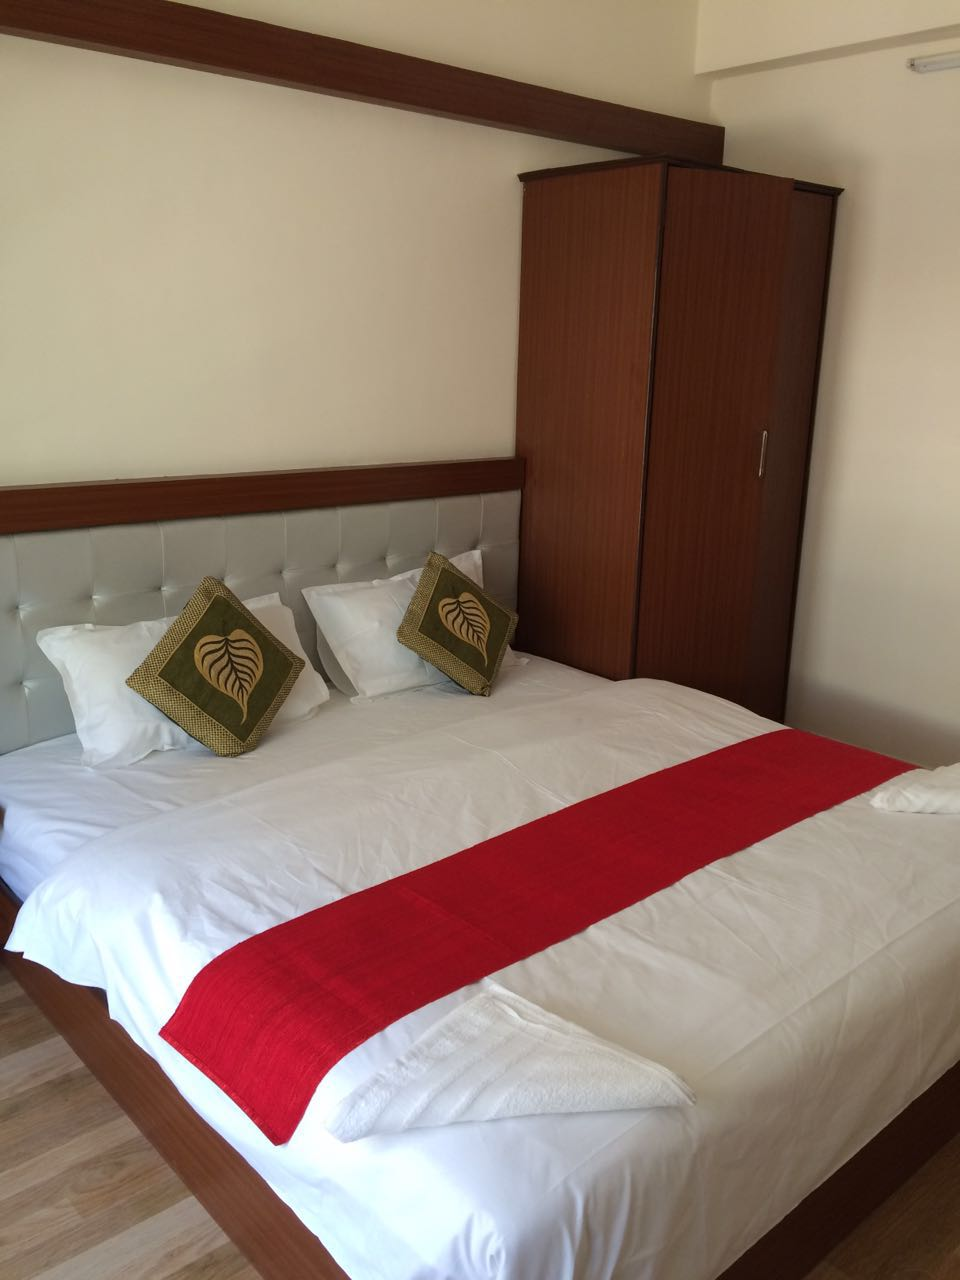 04 Bedrooms apartment rent in Goa